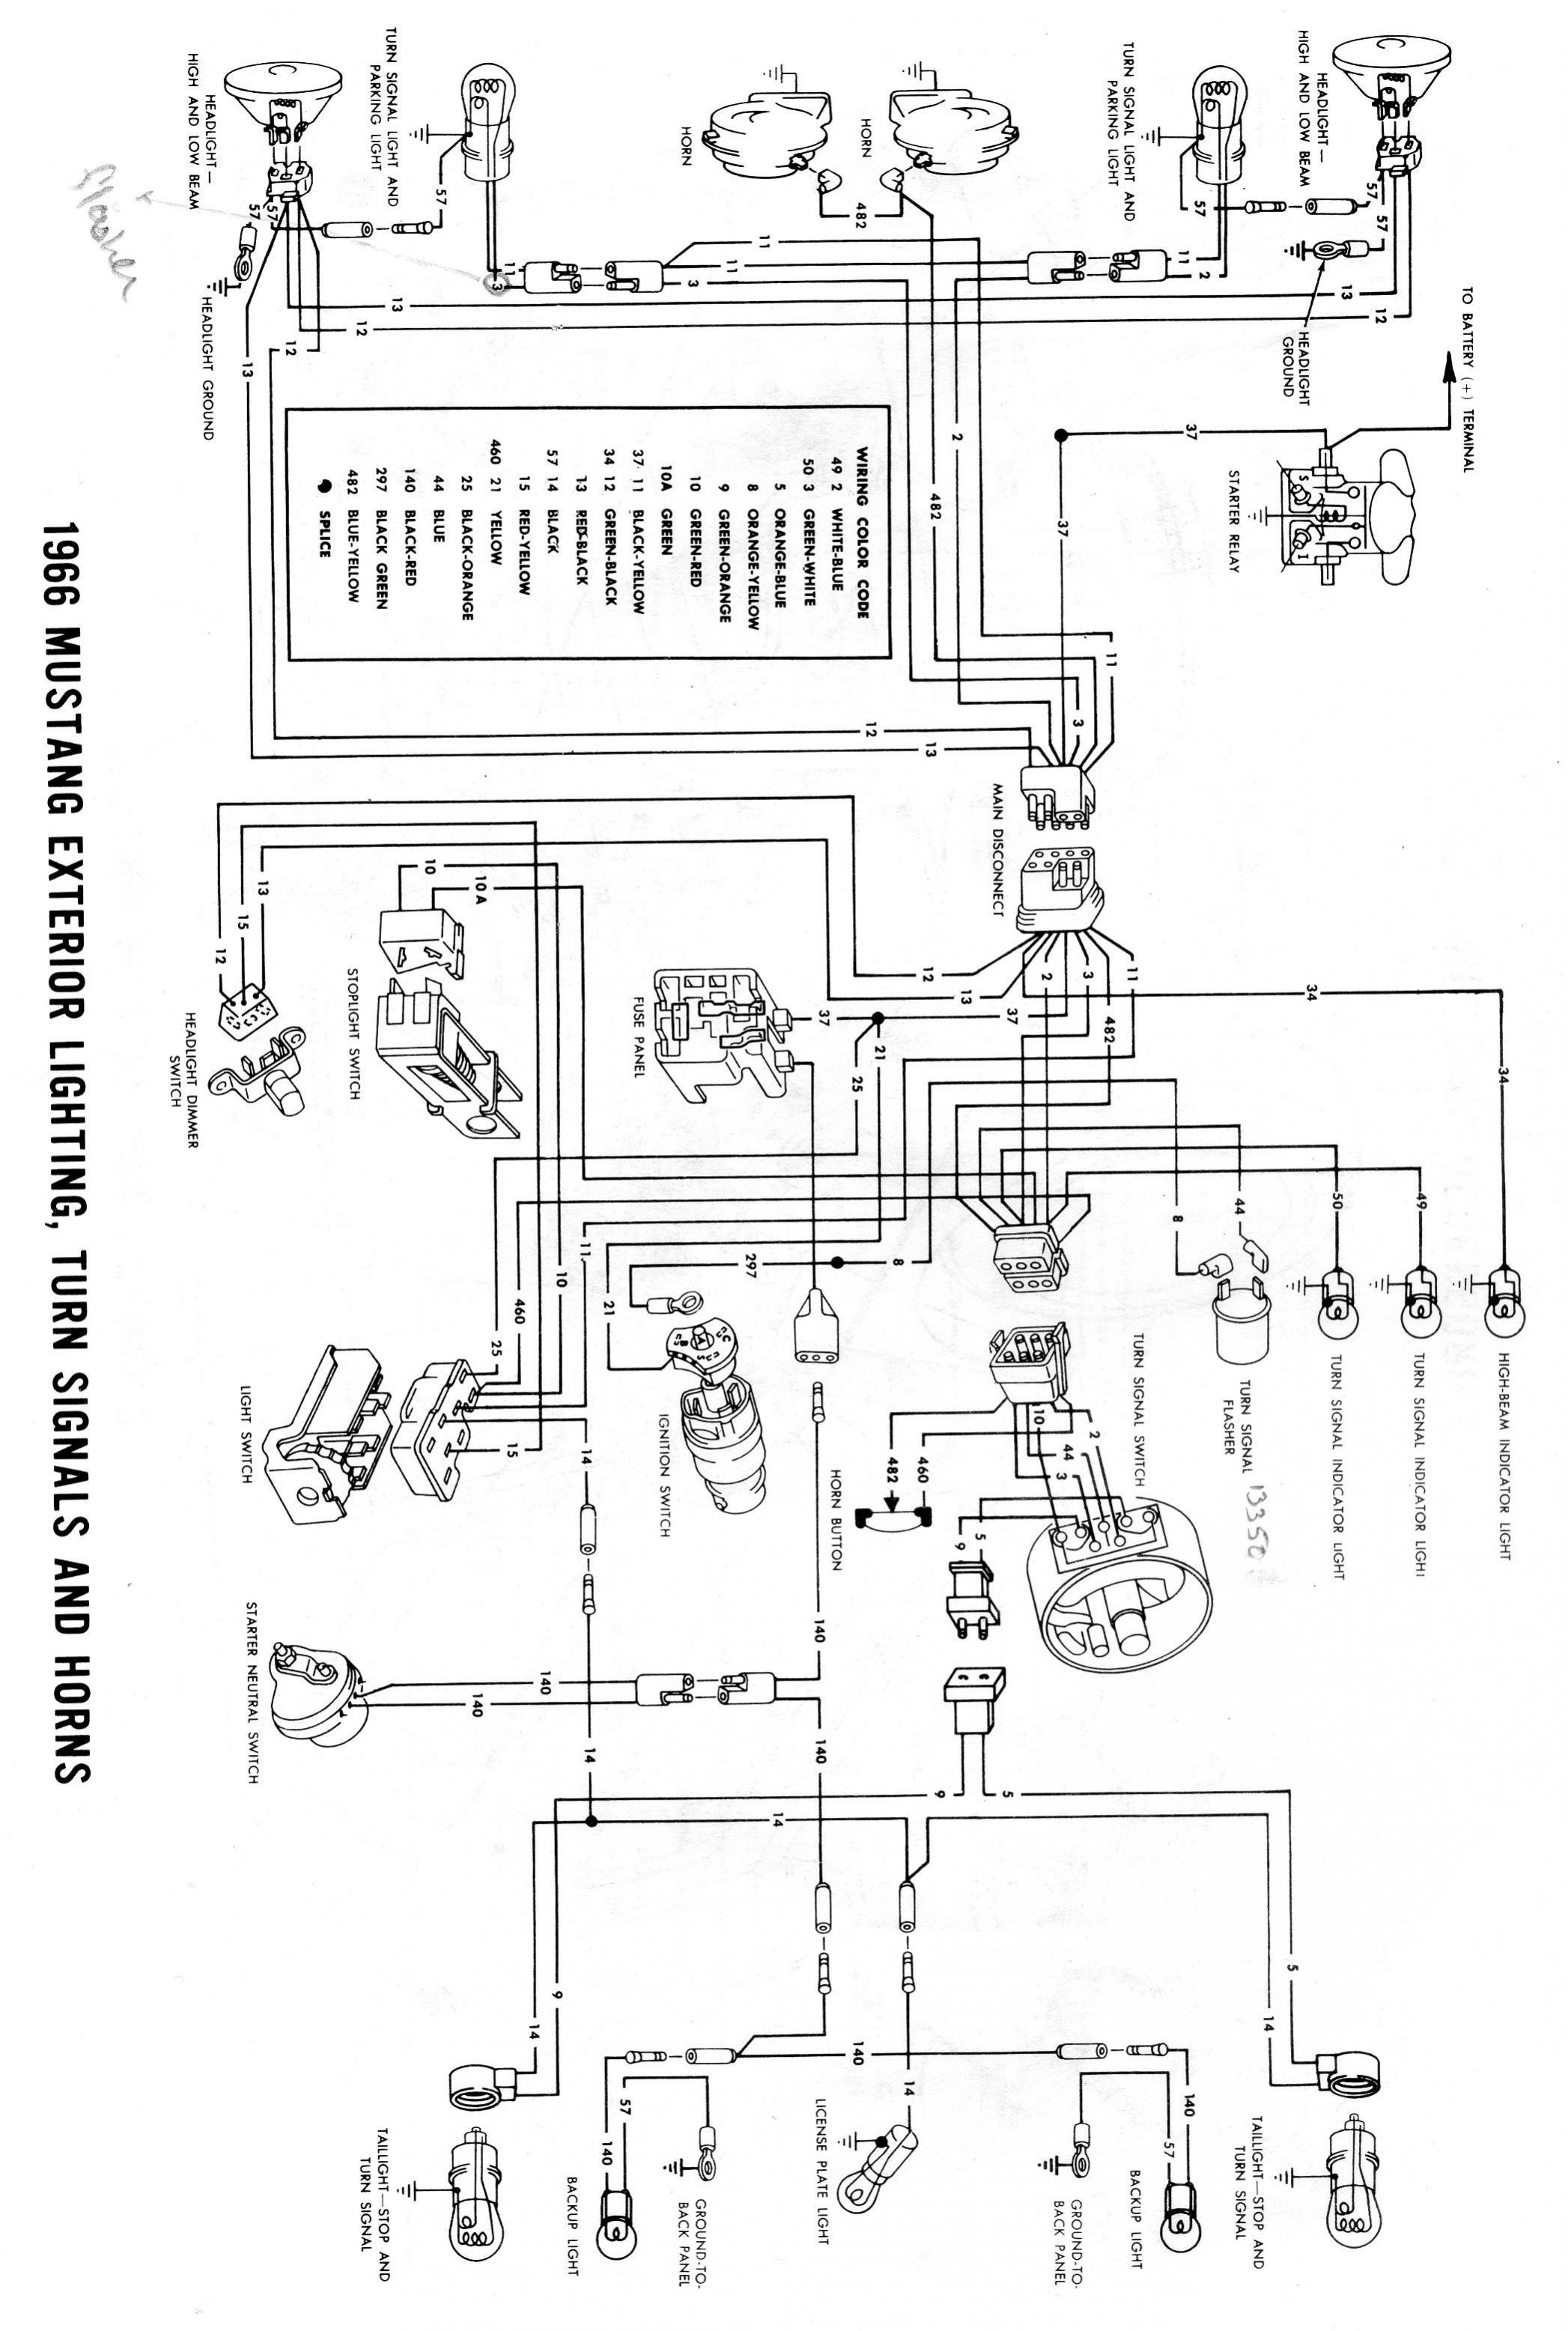 03 mustang fuse box diagram turn signal trusted wiring diagram u2022 rh  justwiringdiagram today 1996 Ford